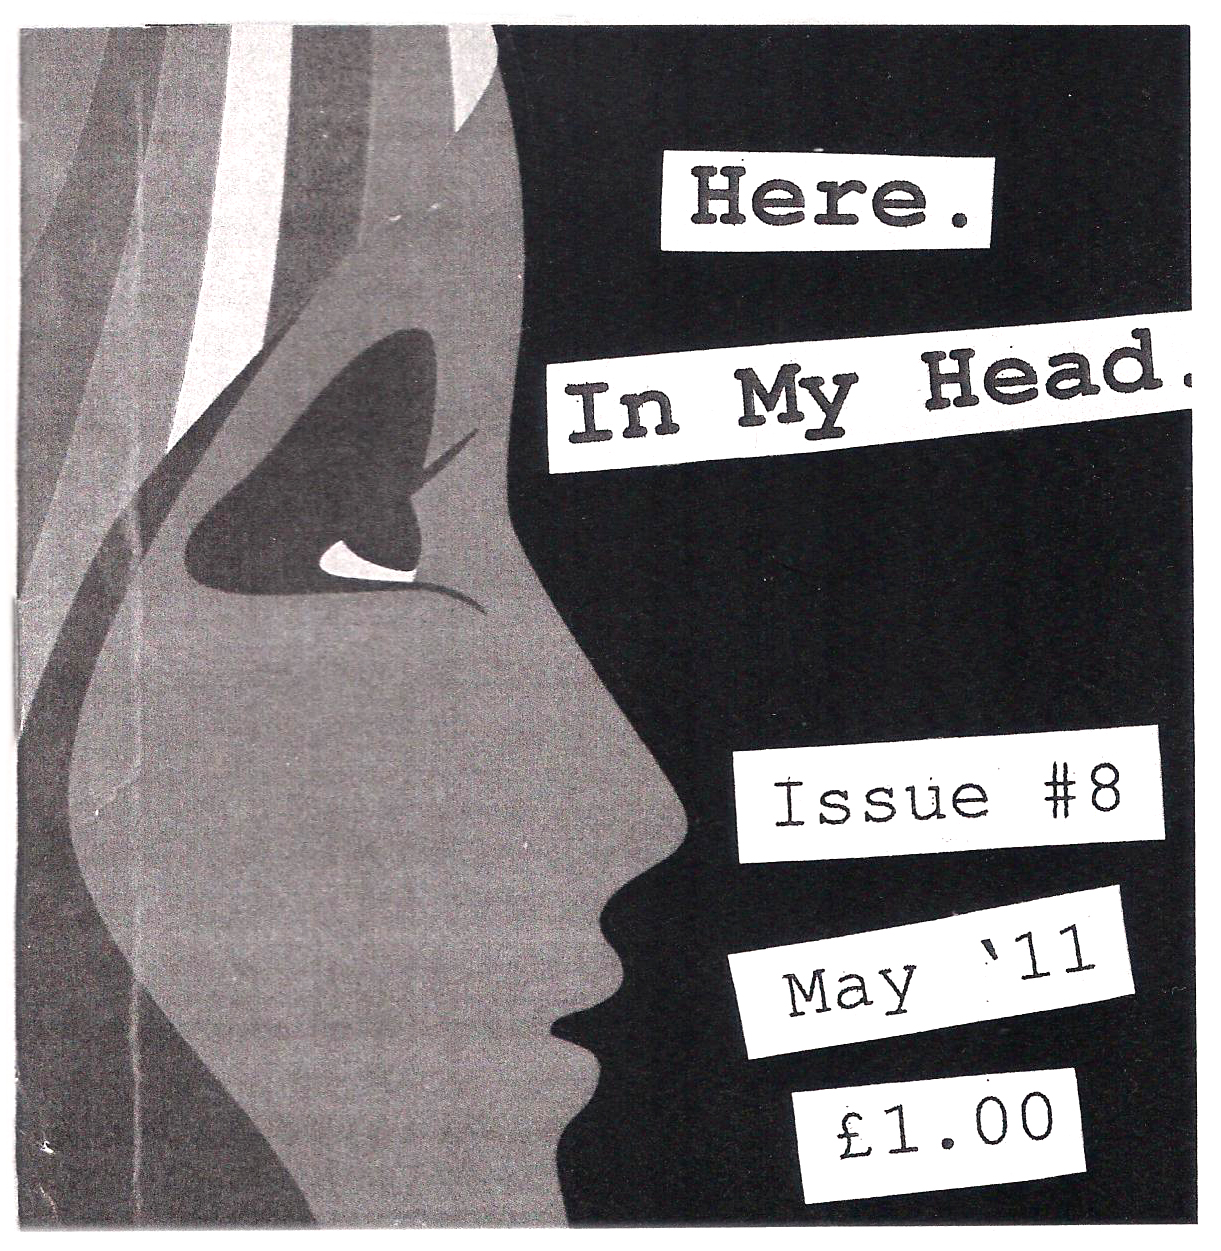 Here In My Head issue 8